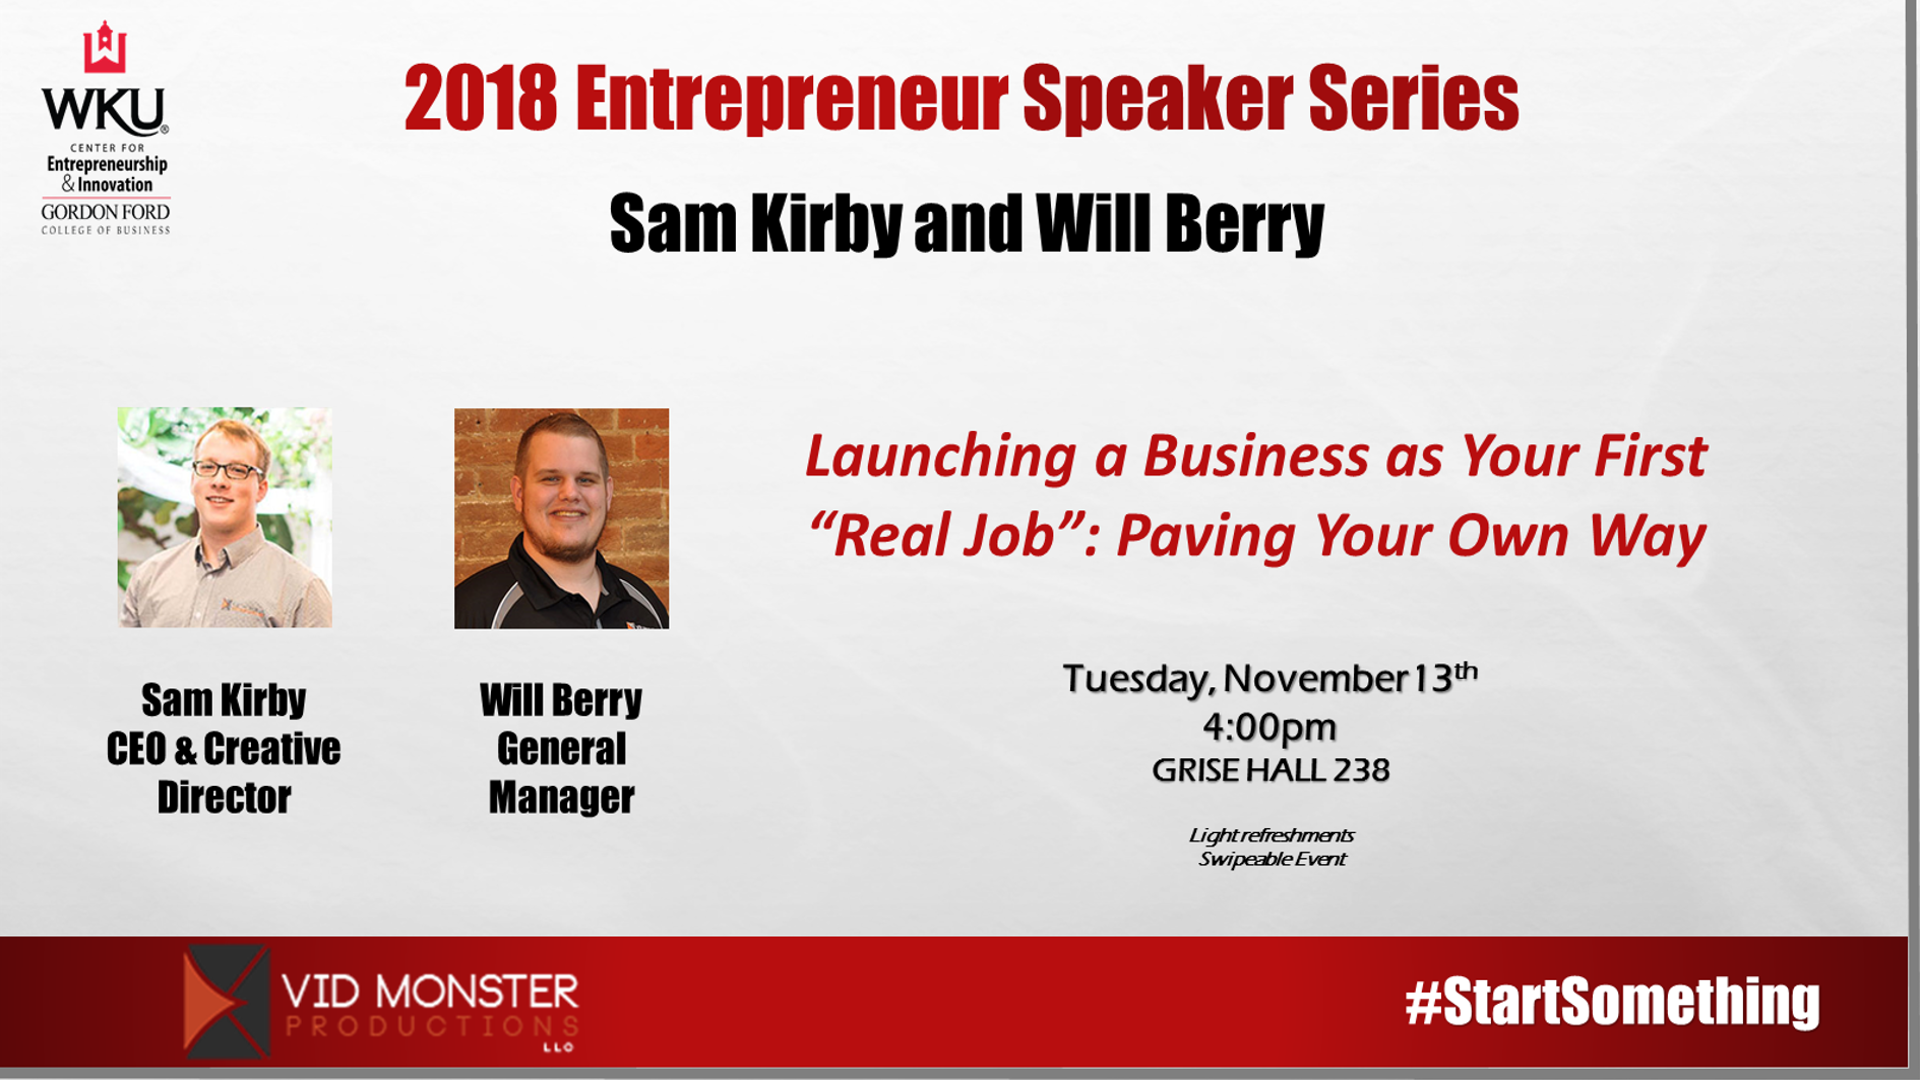 Entrepreneur Speaker Series - Sam Kirby and Will Berry